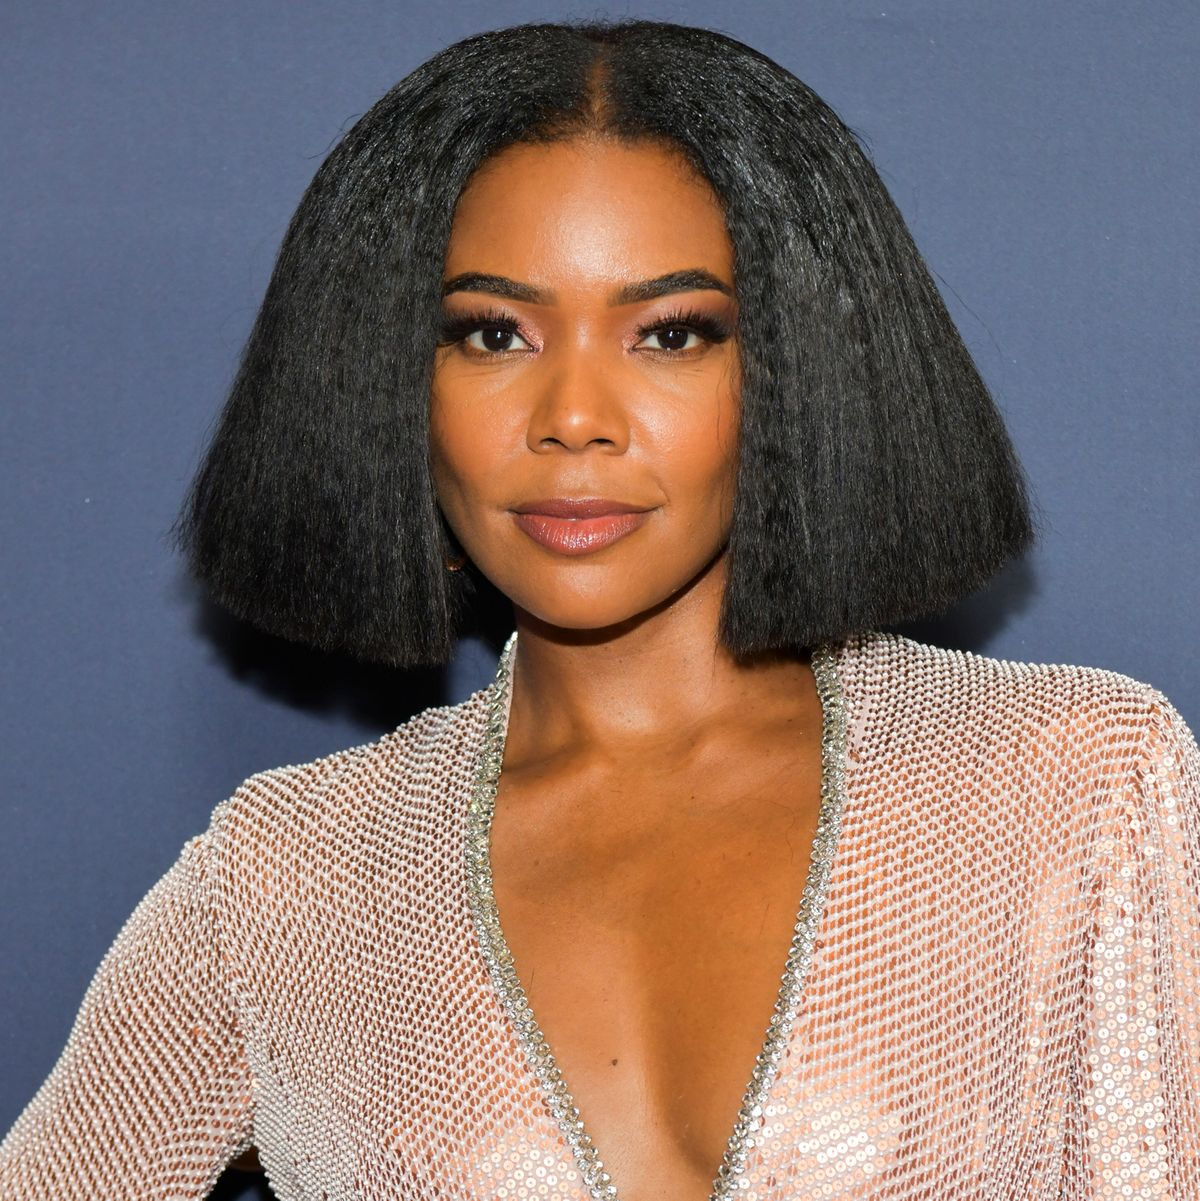 gabrielle-union-shows-off-her-essentials-for-a-self-care-sunday